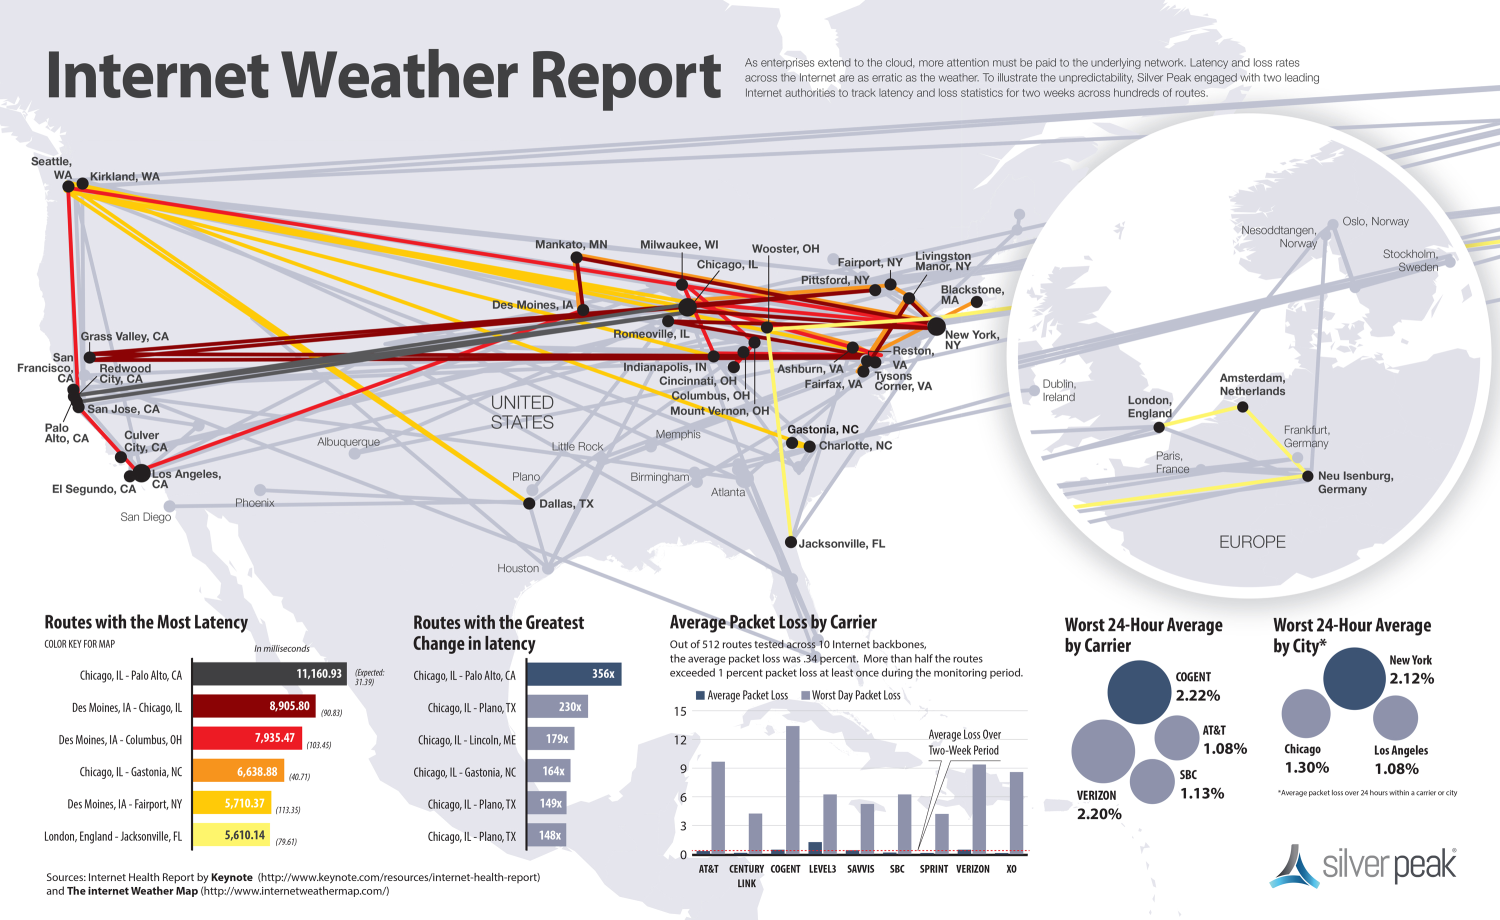 infografik silver peak internet-weather-report-infographic 1